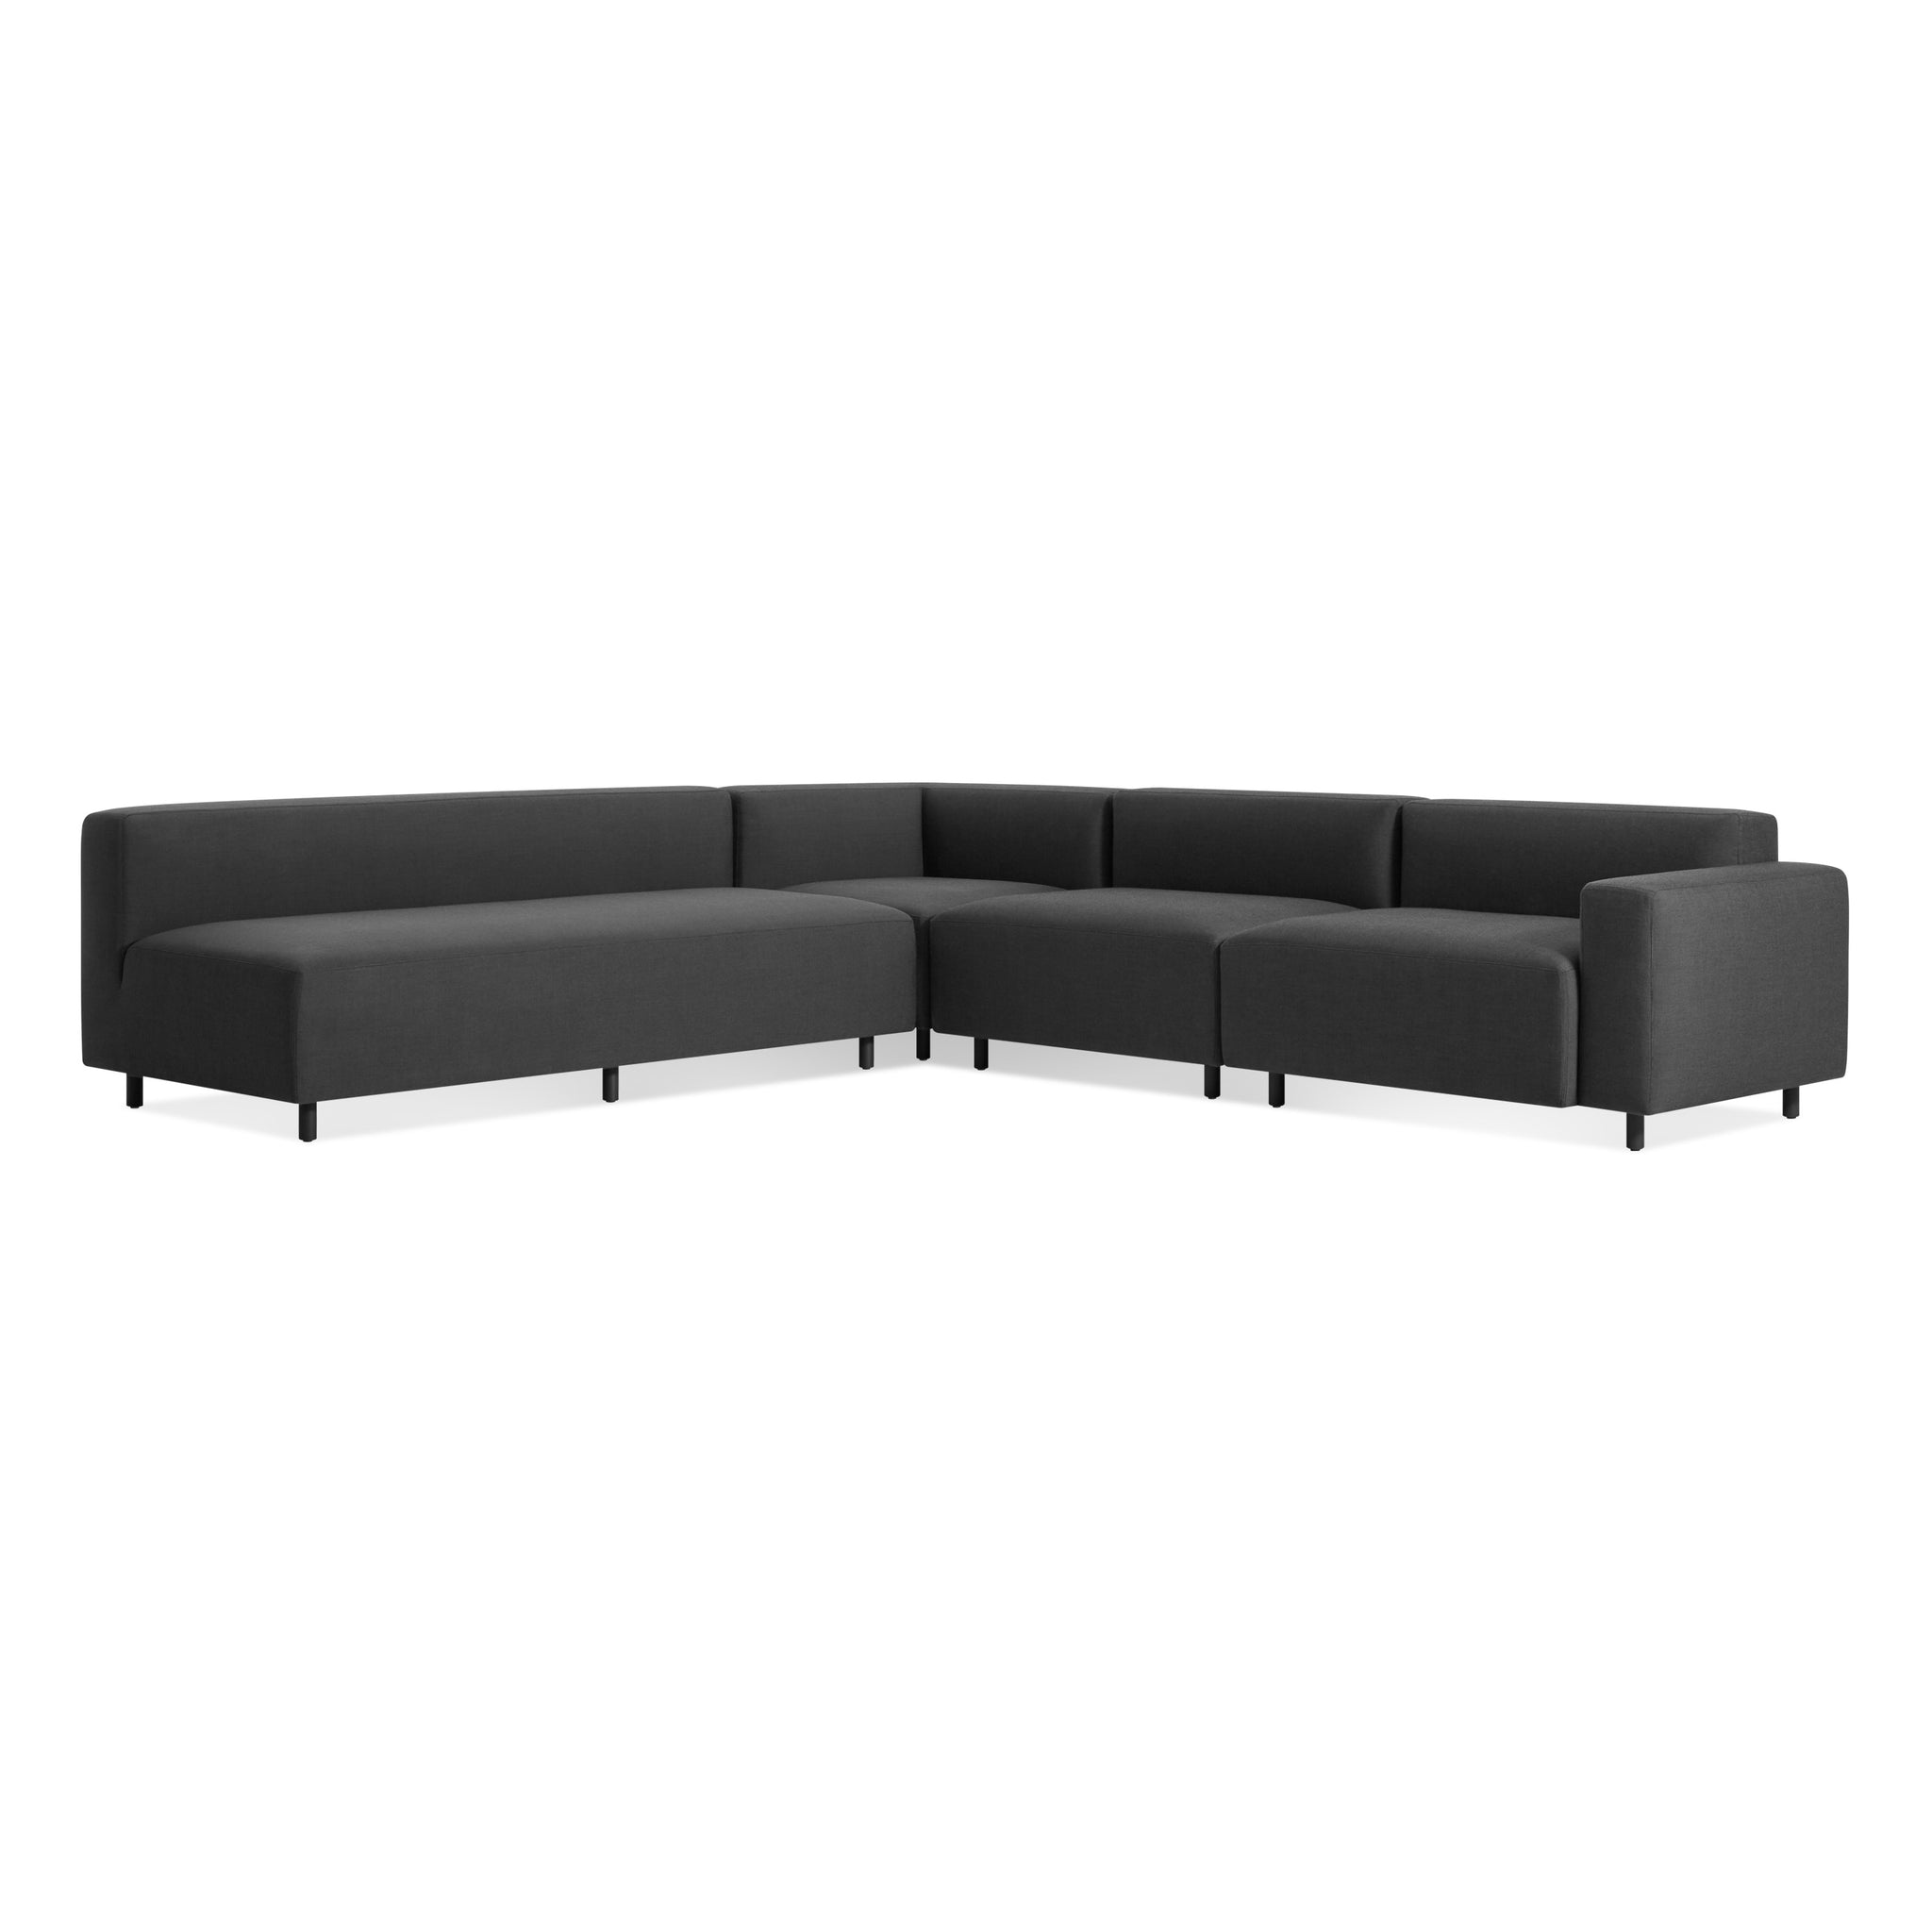 9 Yard Outdoor L Sectional Sofa